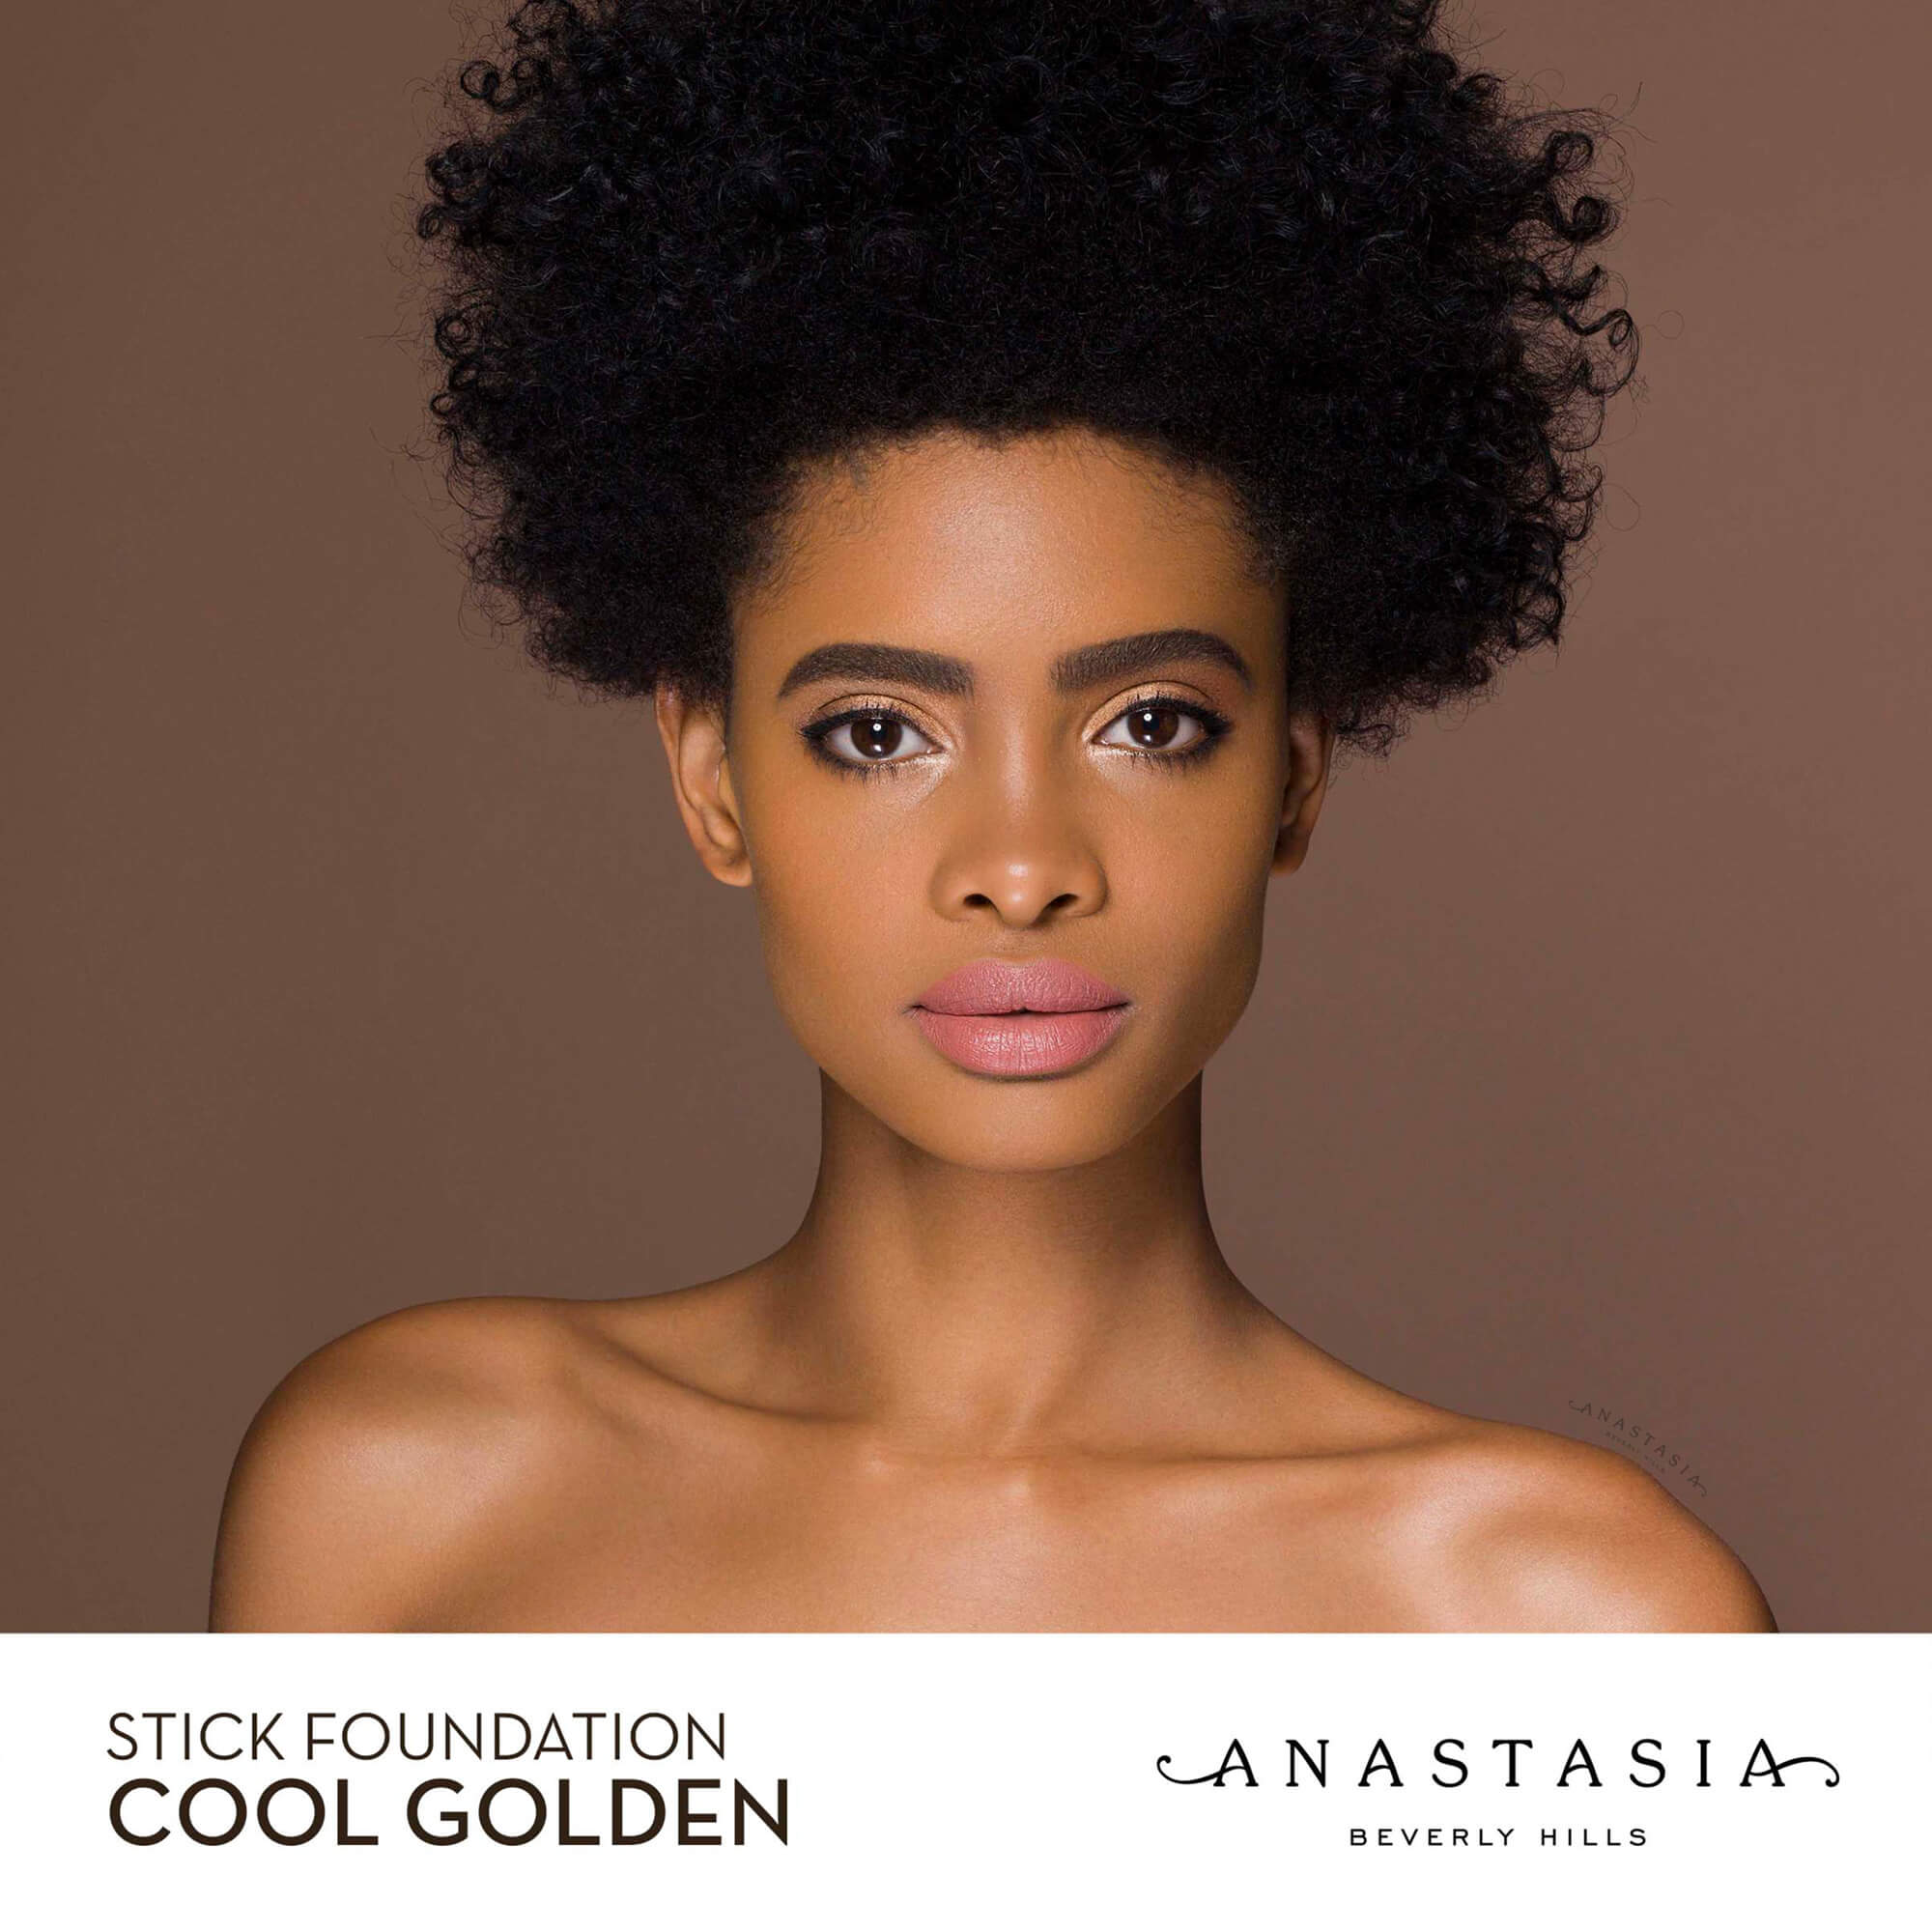 Stick Foundation - Cool Golden